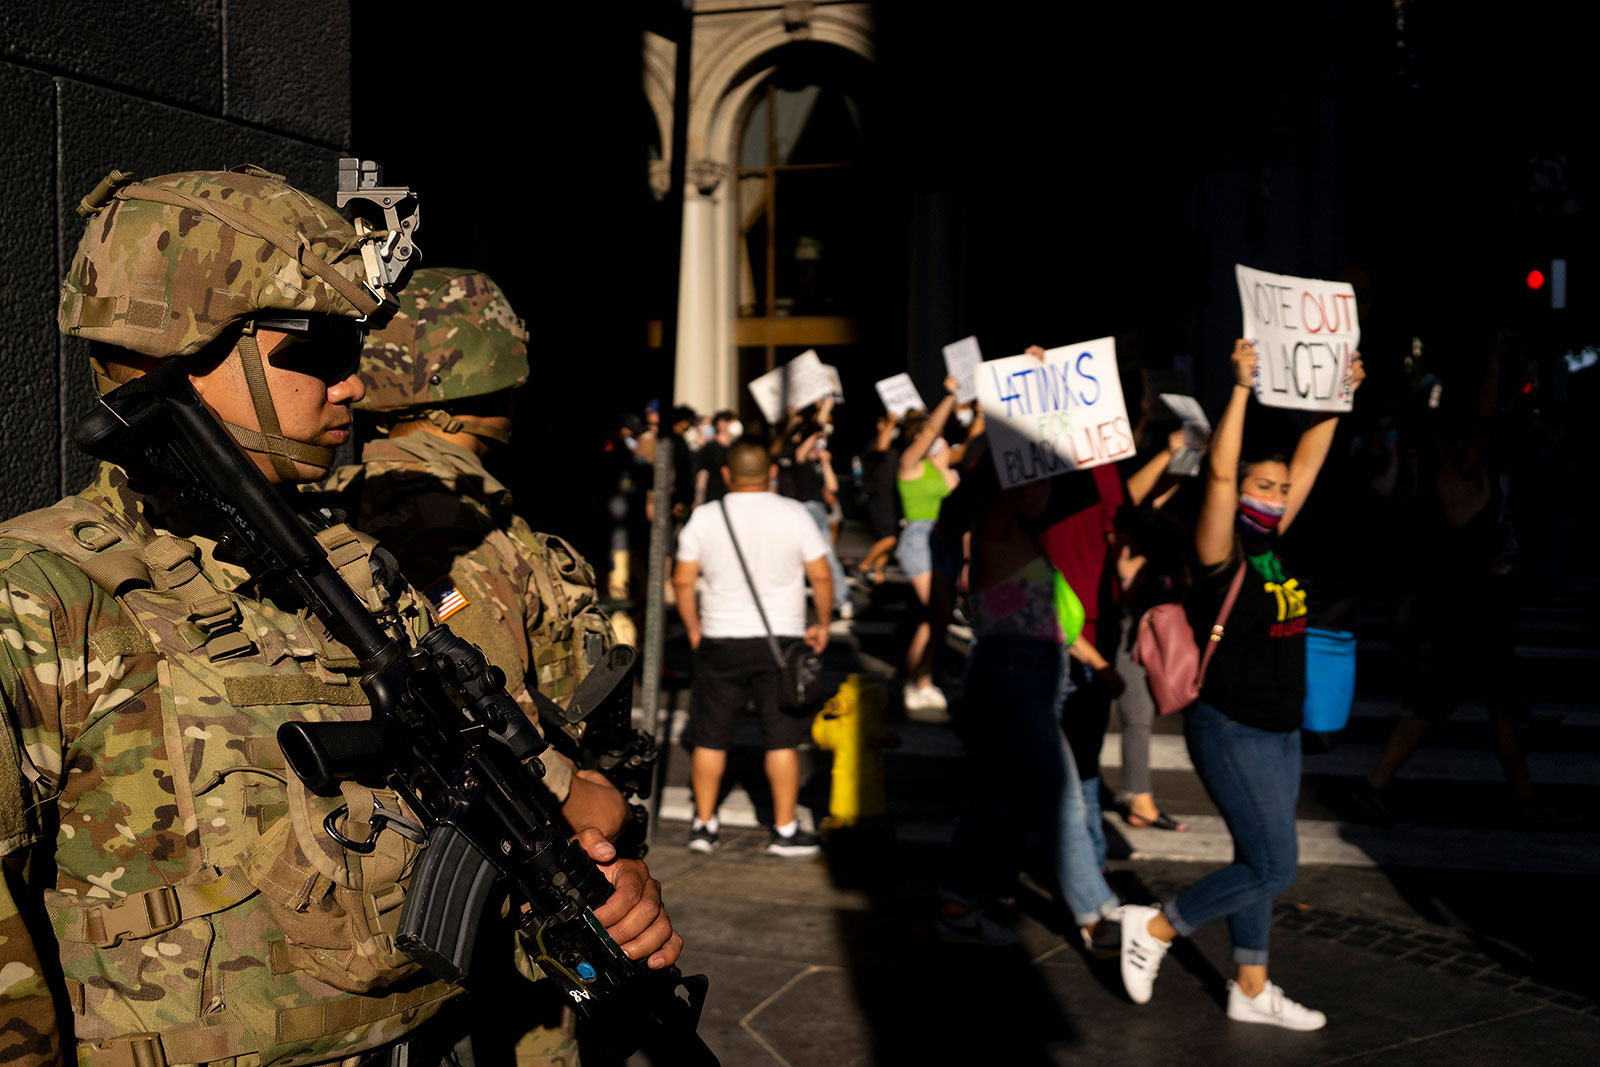 National Guardsmen watch over a protest in Los Angeles on June 3.